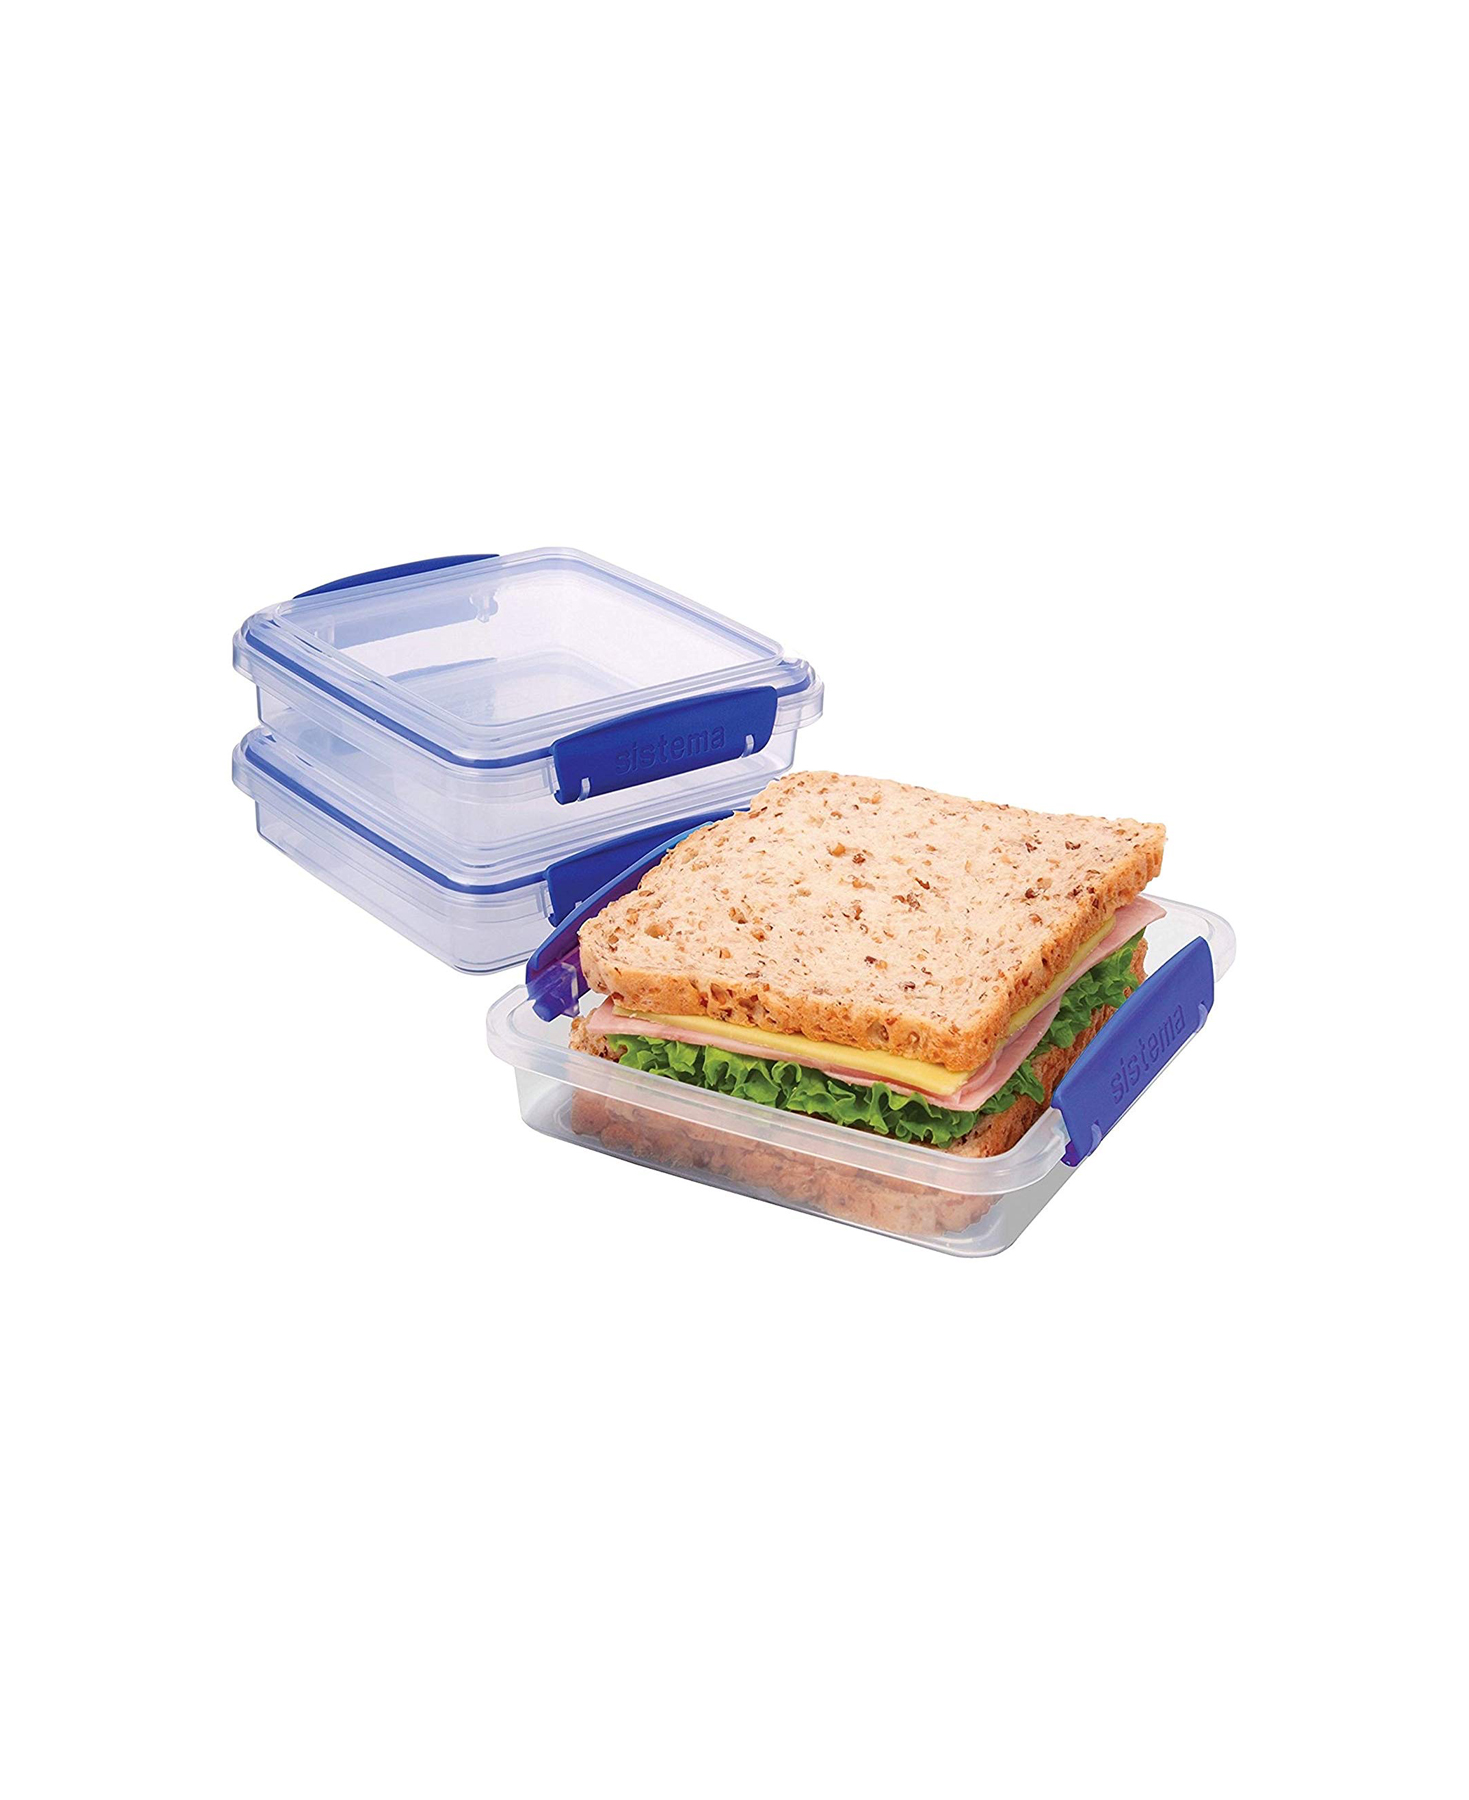 Packing Sandwiches